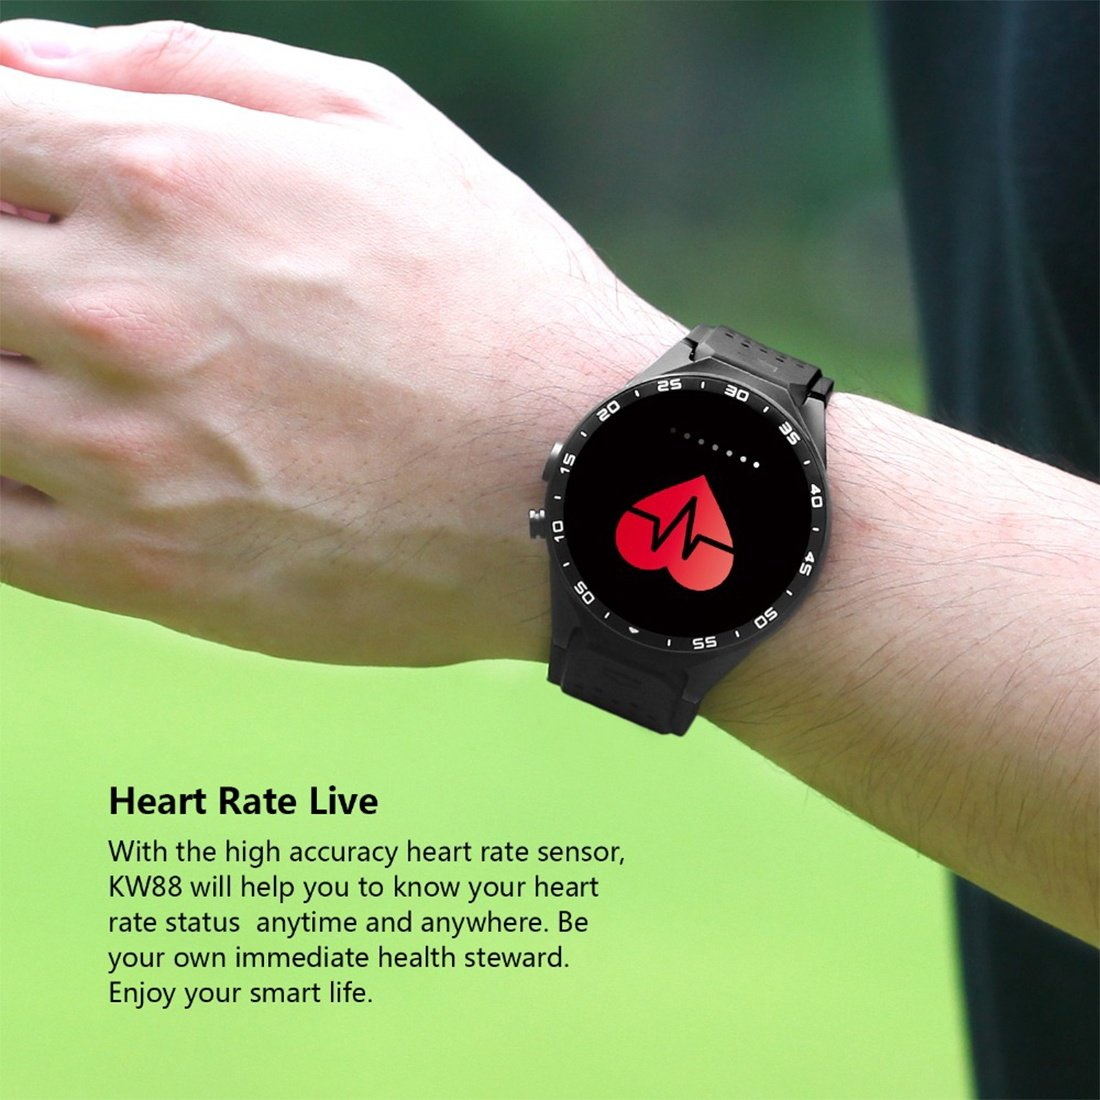 Amazon.com: Smart Watches KW88 Android Smartwatch Heart Rate ...